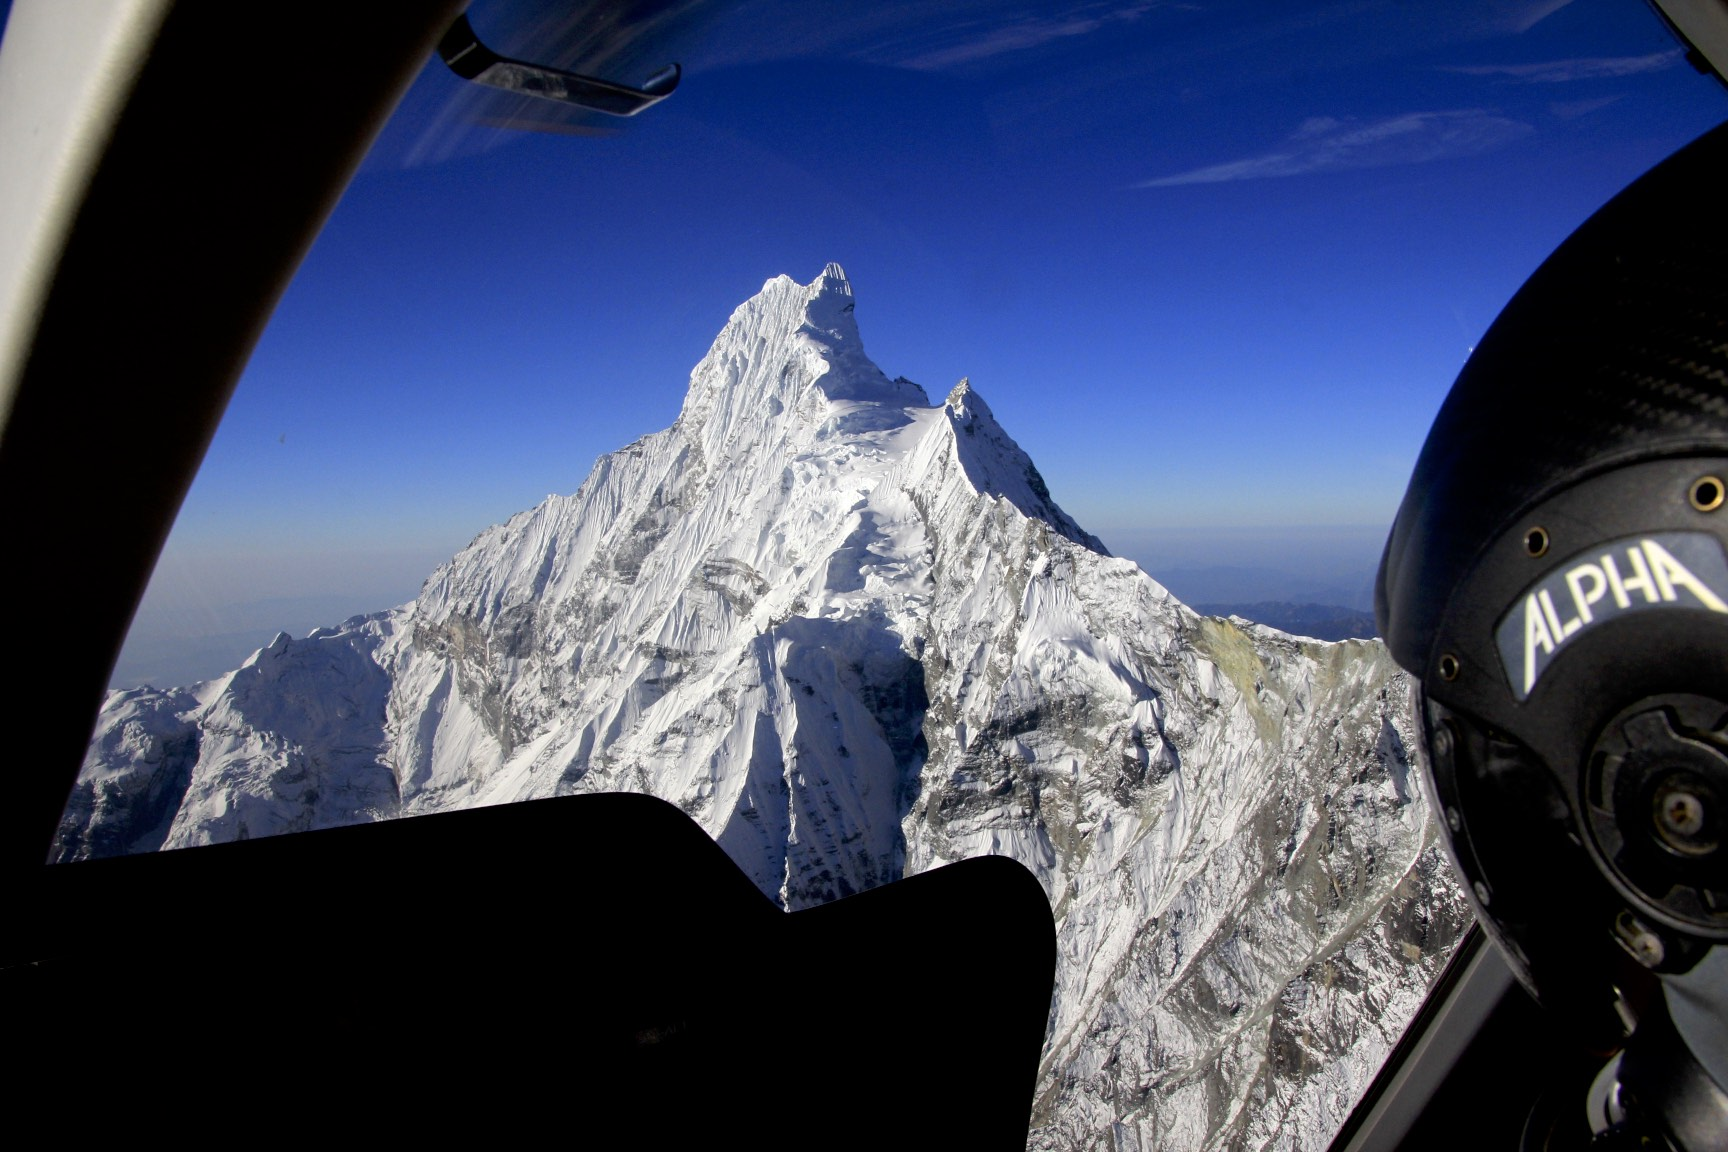 The north face of Machapuchare - absolutely spectacular from the helicopter at the altitude of almost 6,000m. This mountain looks awesome from all sides.